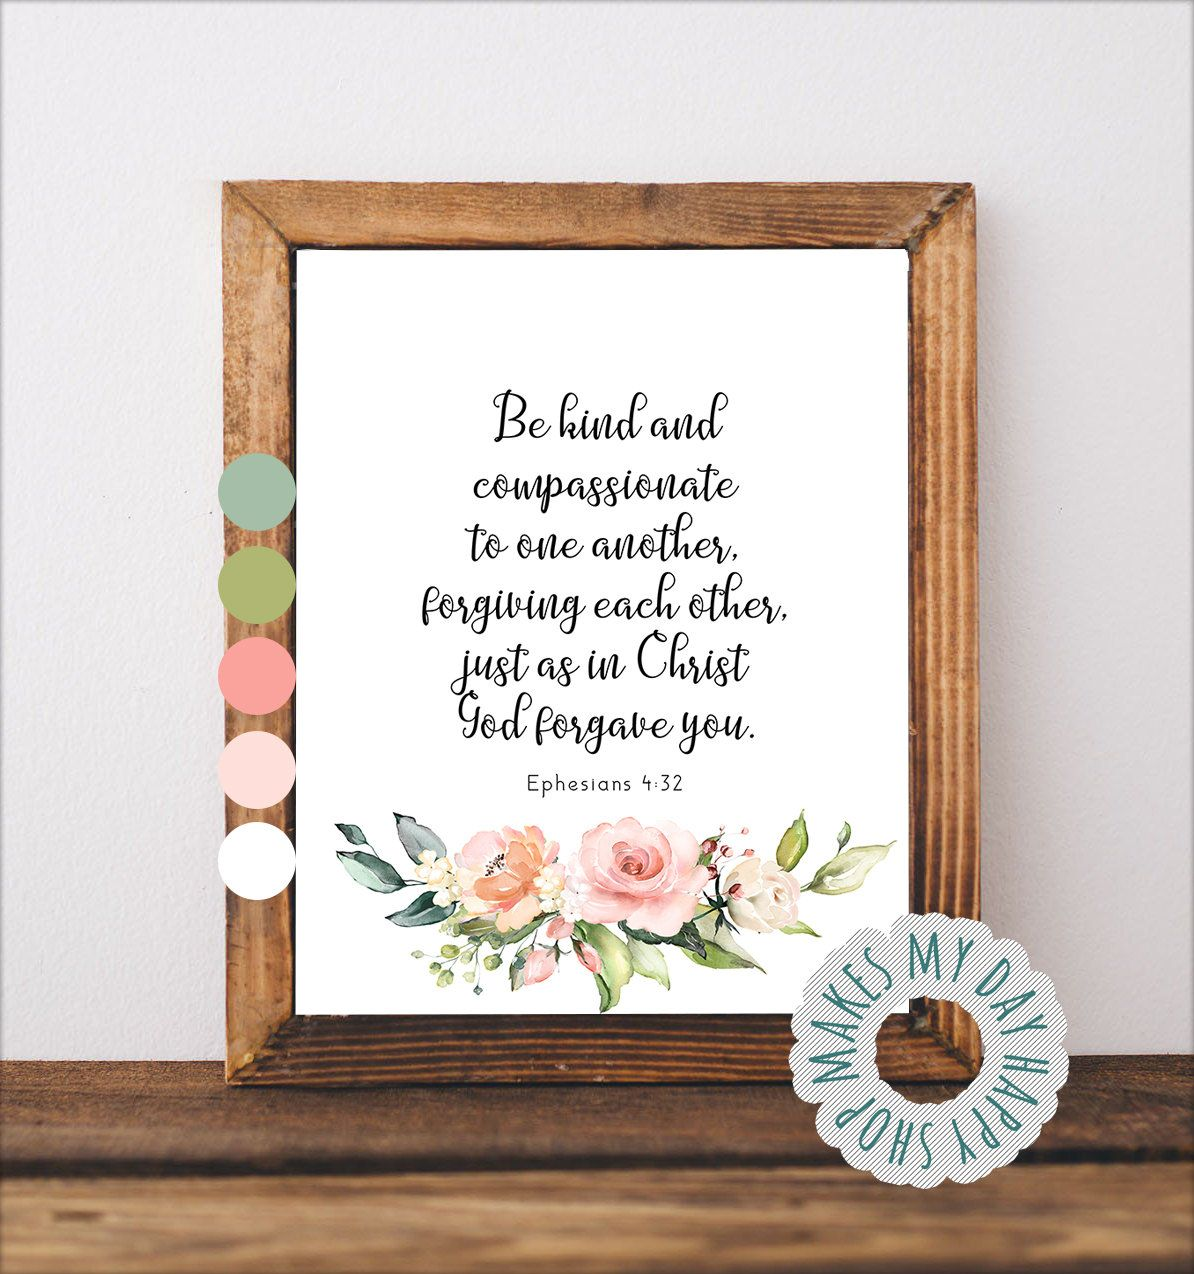 Be kind and compassionateephesians 432 bible verse print